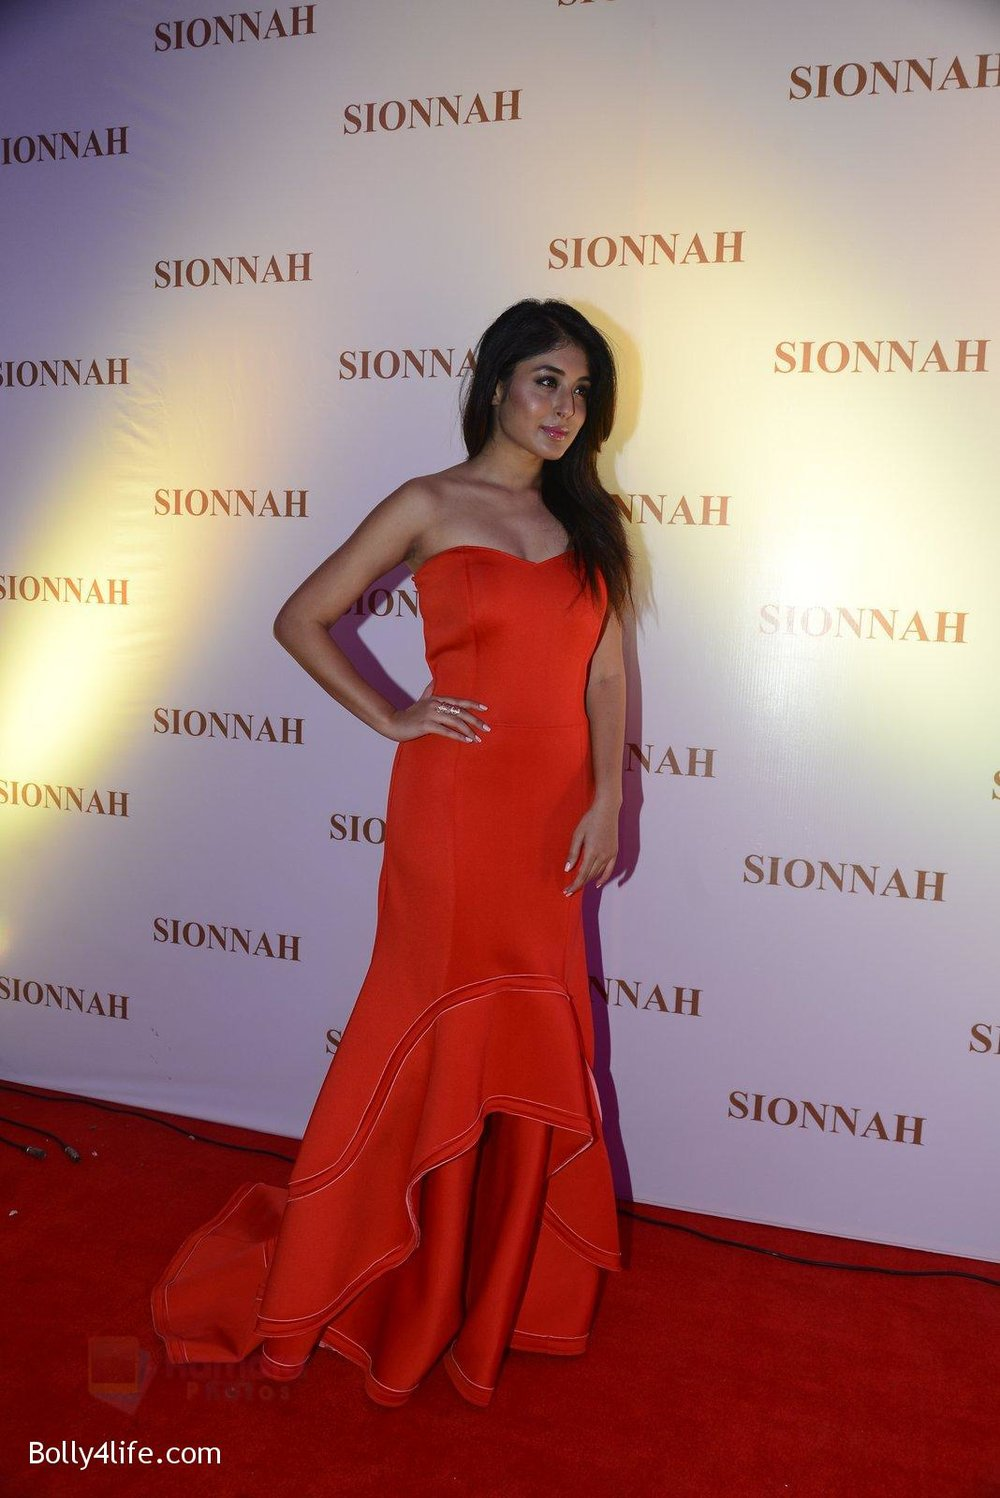 Kritika-Kamra-at-sionnah-store-launch-on-1st-Oct-2016-44.jpg